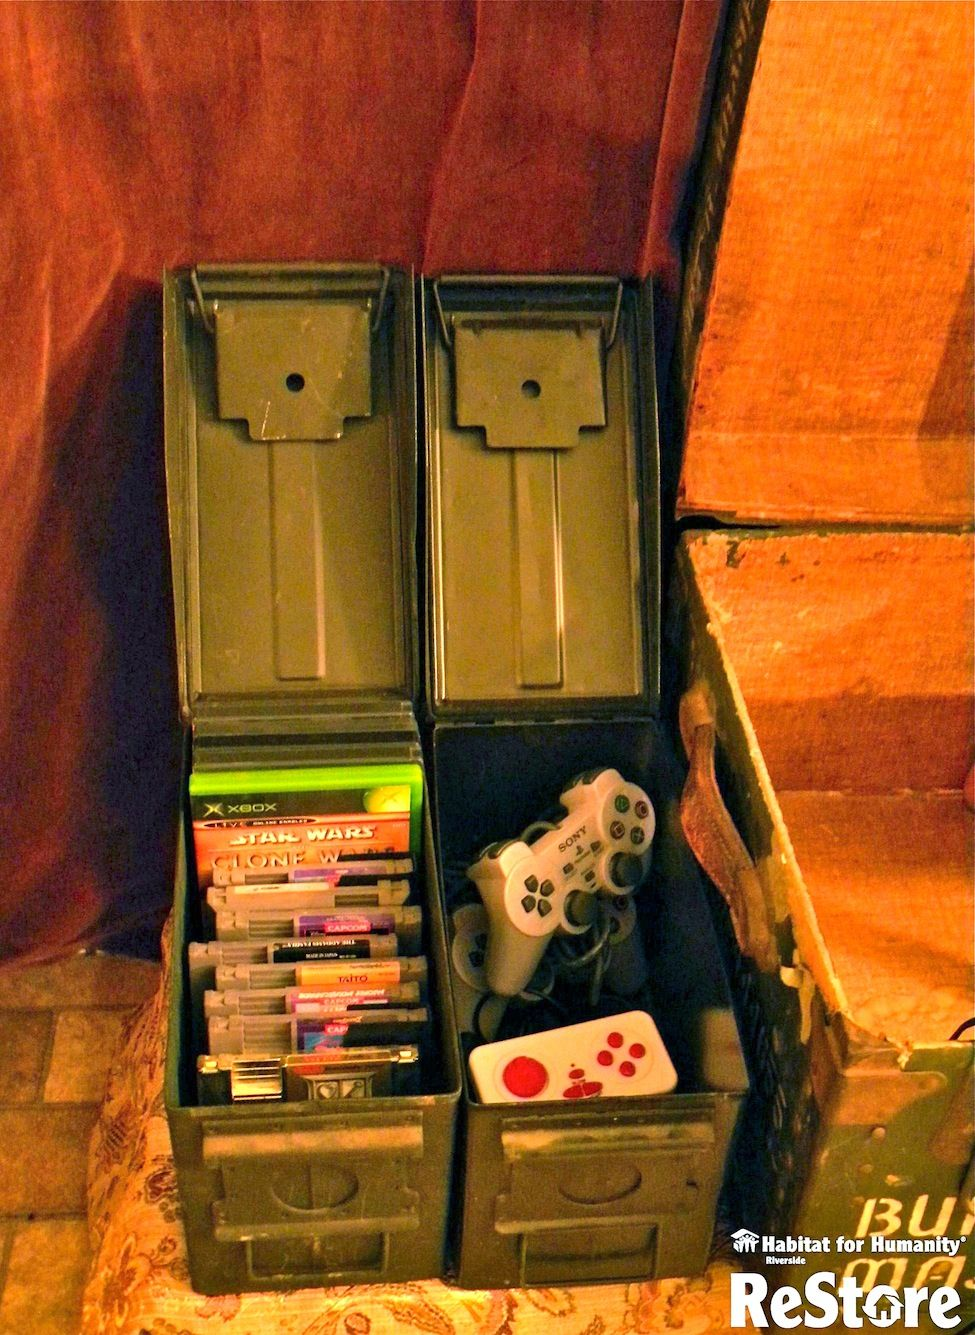 Ammo Cans Repurposed Into Video Game Controller Storage About A Foot And You Can Repurpose Those Wires Within The